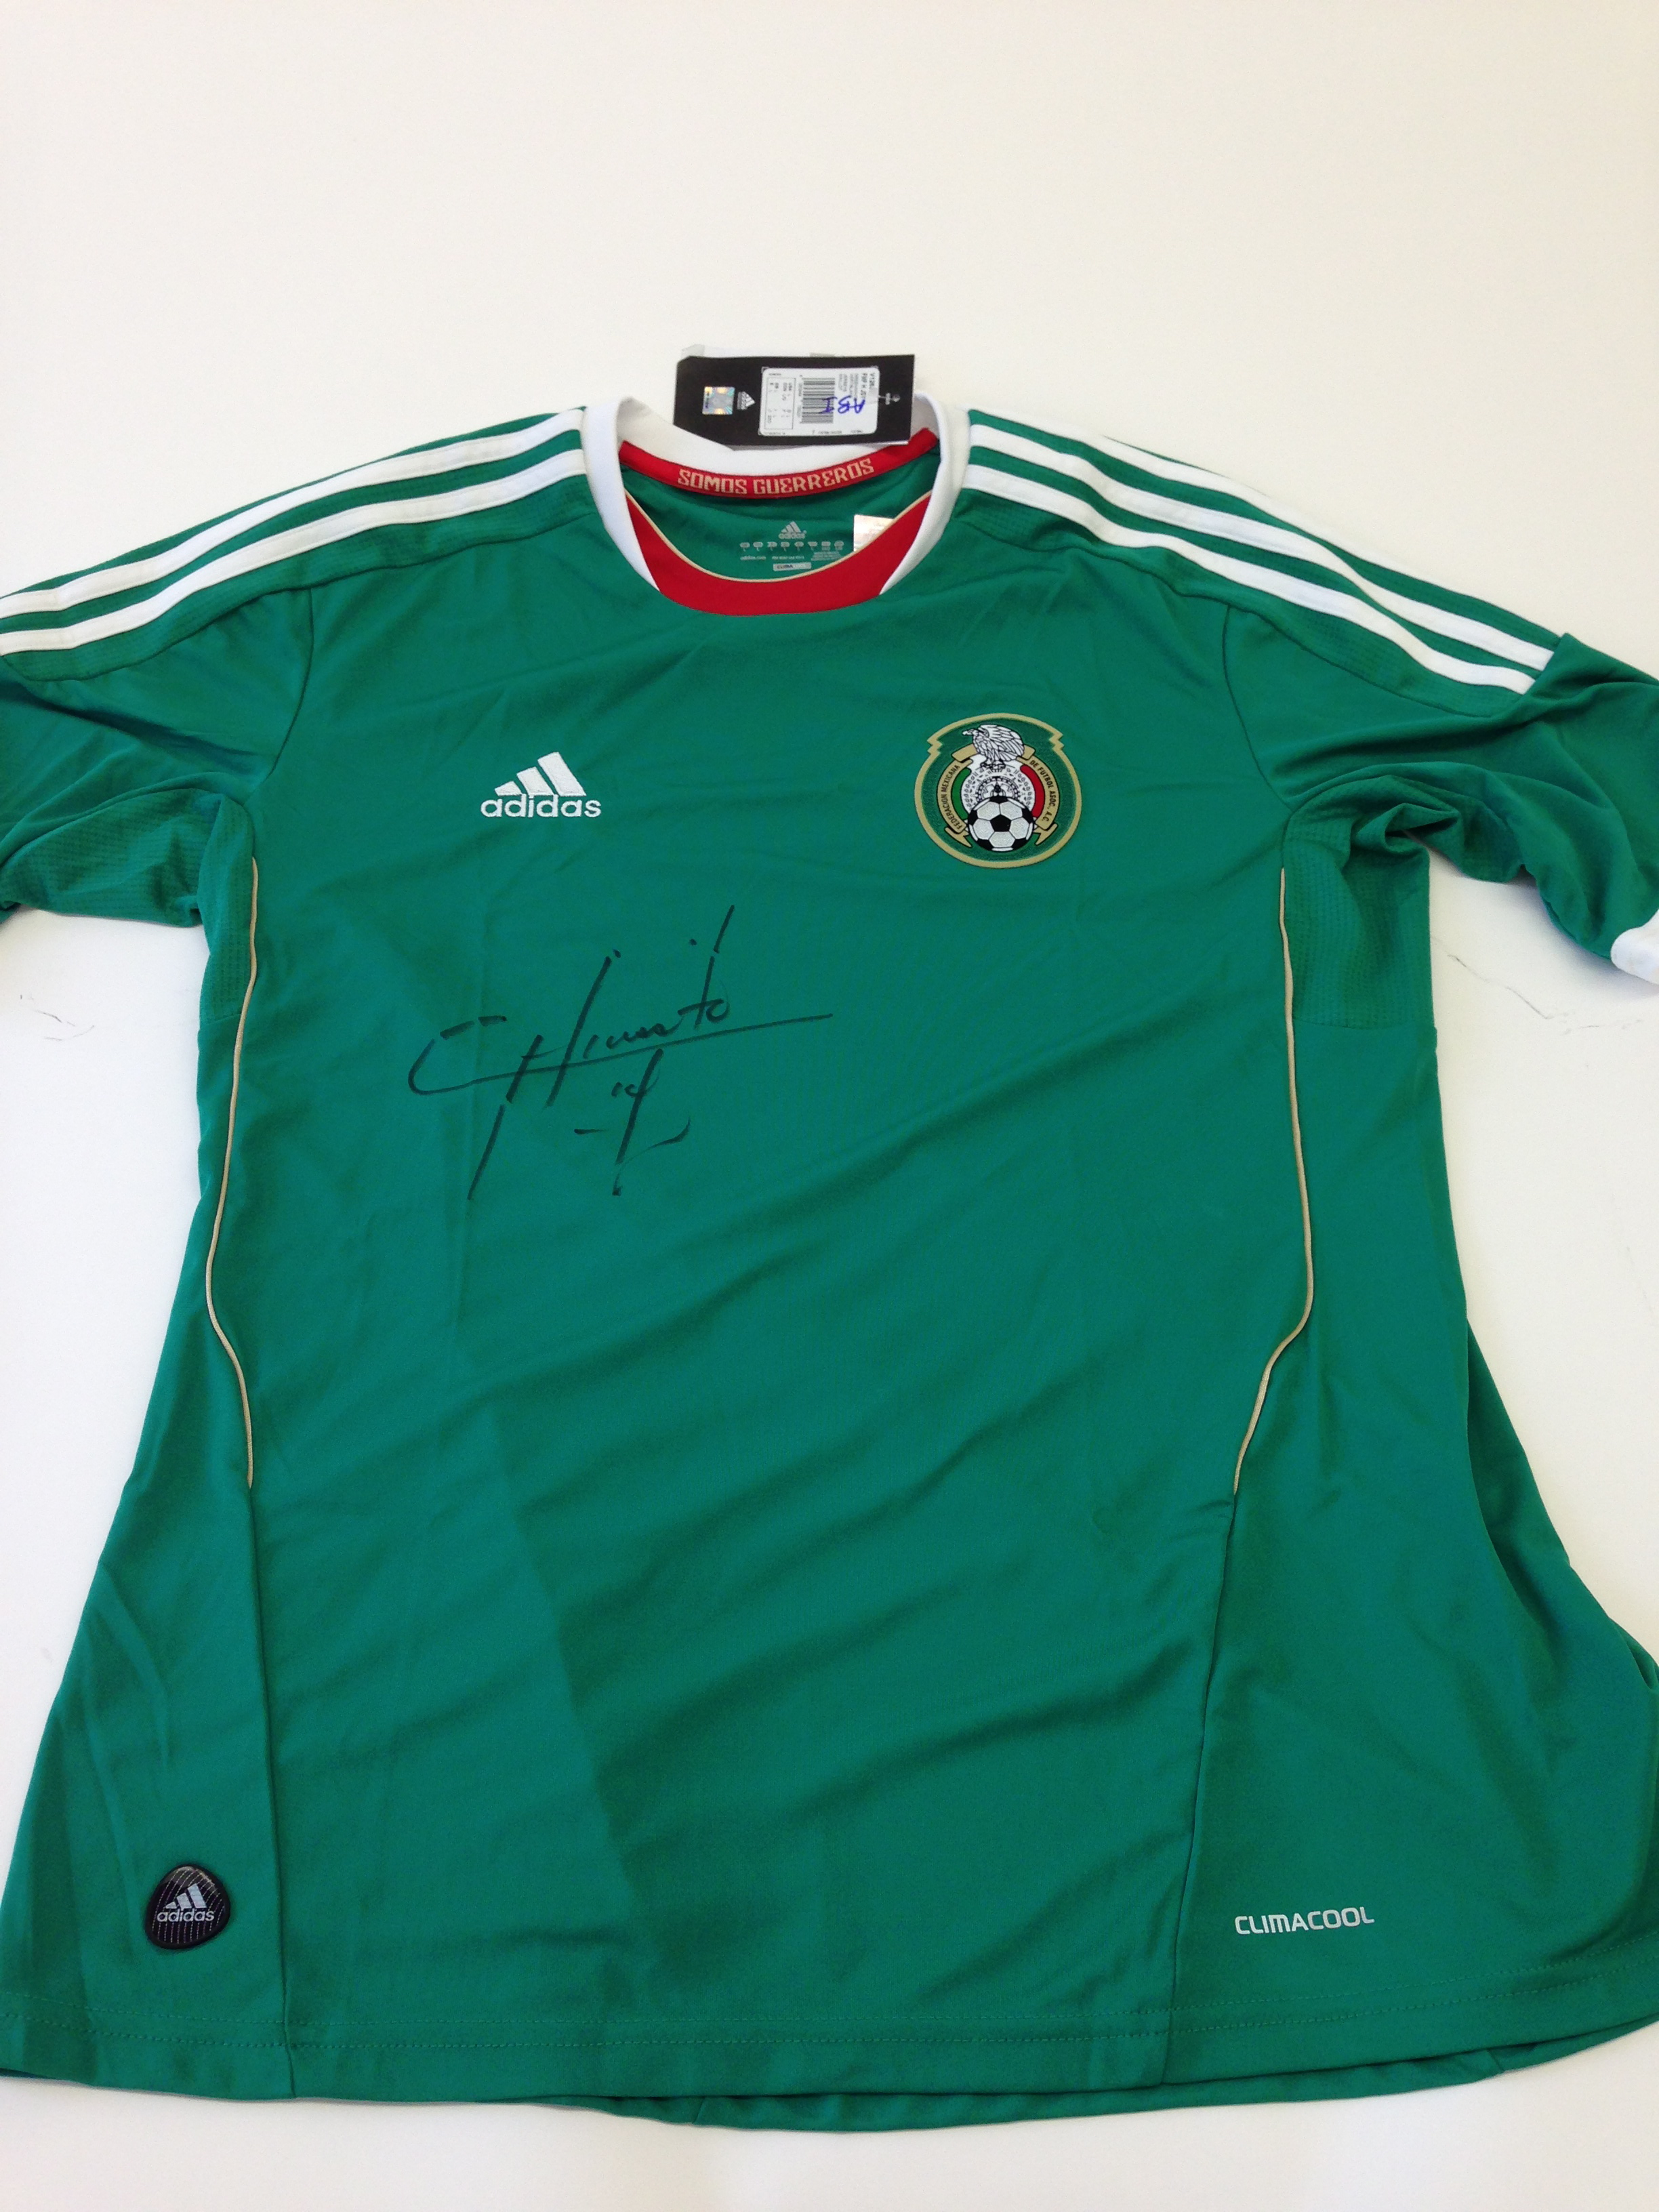 Collect This Mexico National Football Team Jersey Autographed by ... 2a1e1774e